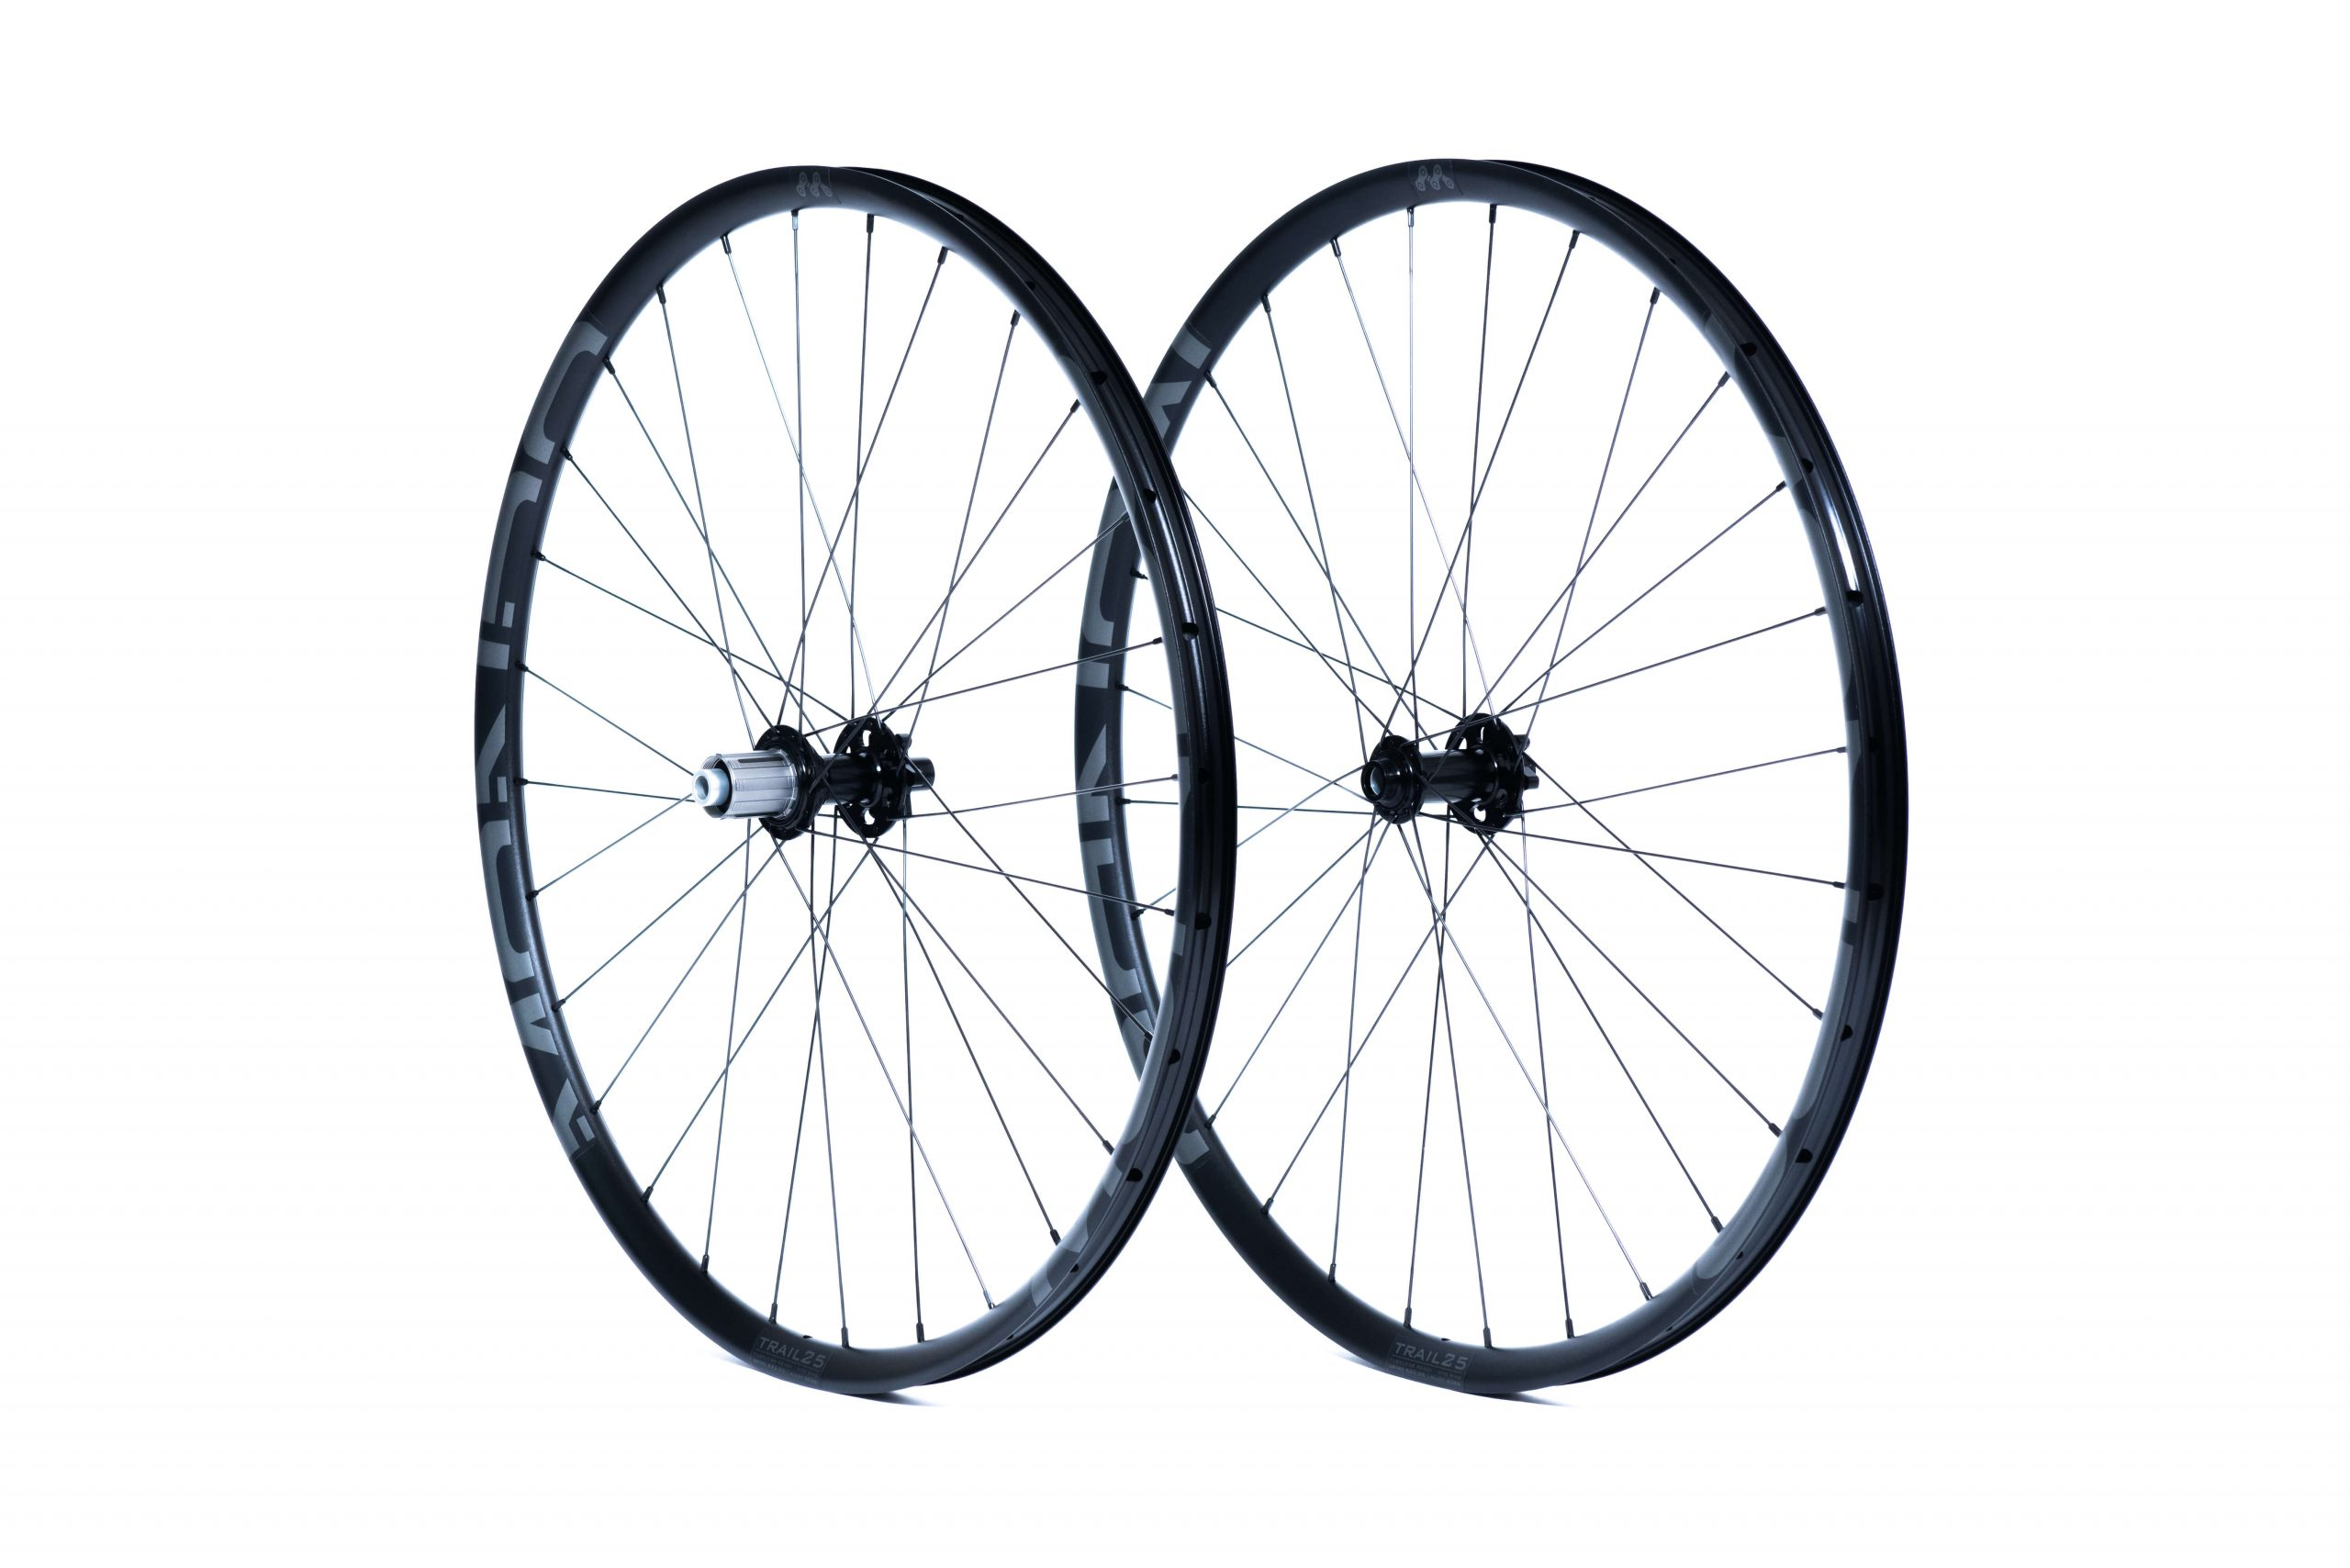 Mondo Trail25 wheels